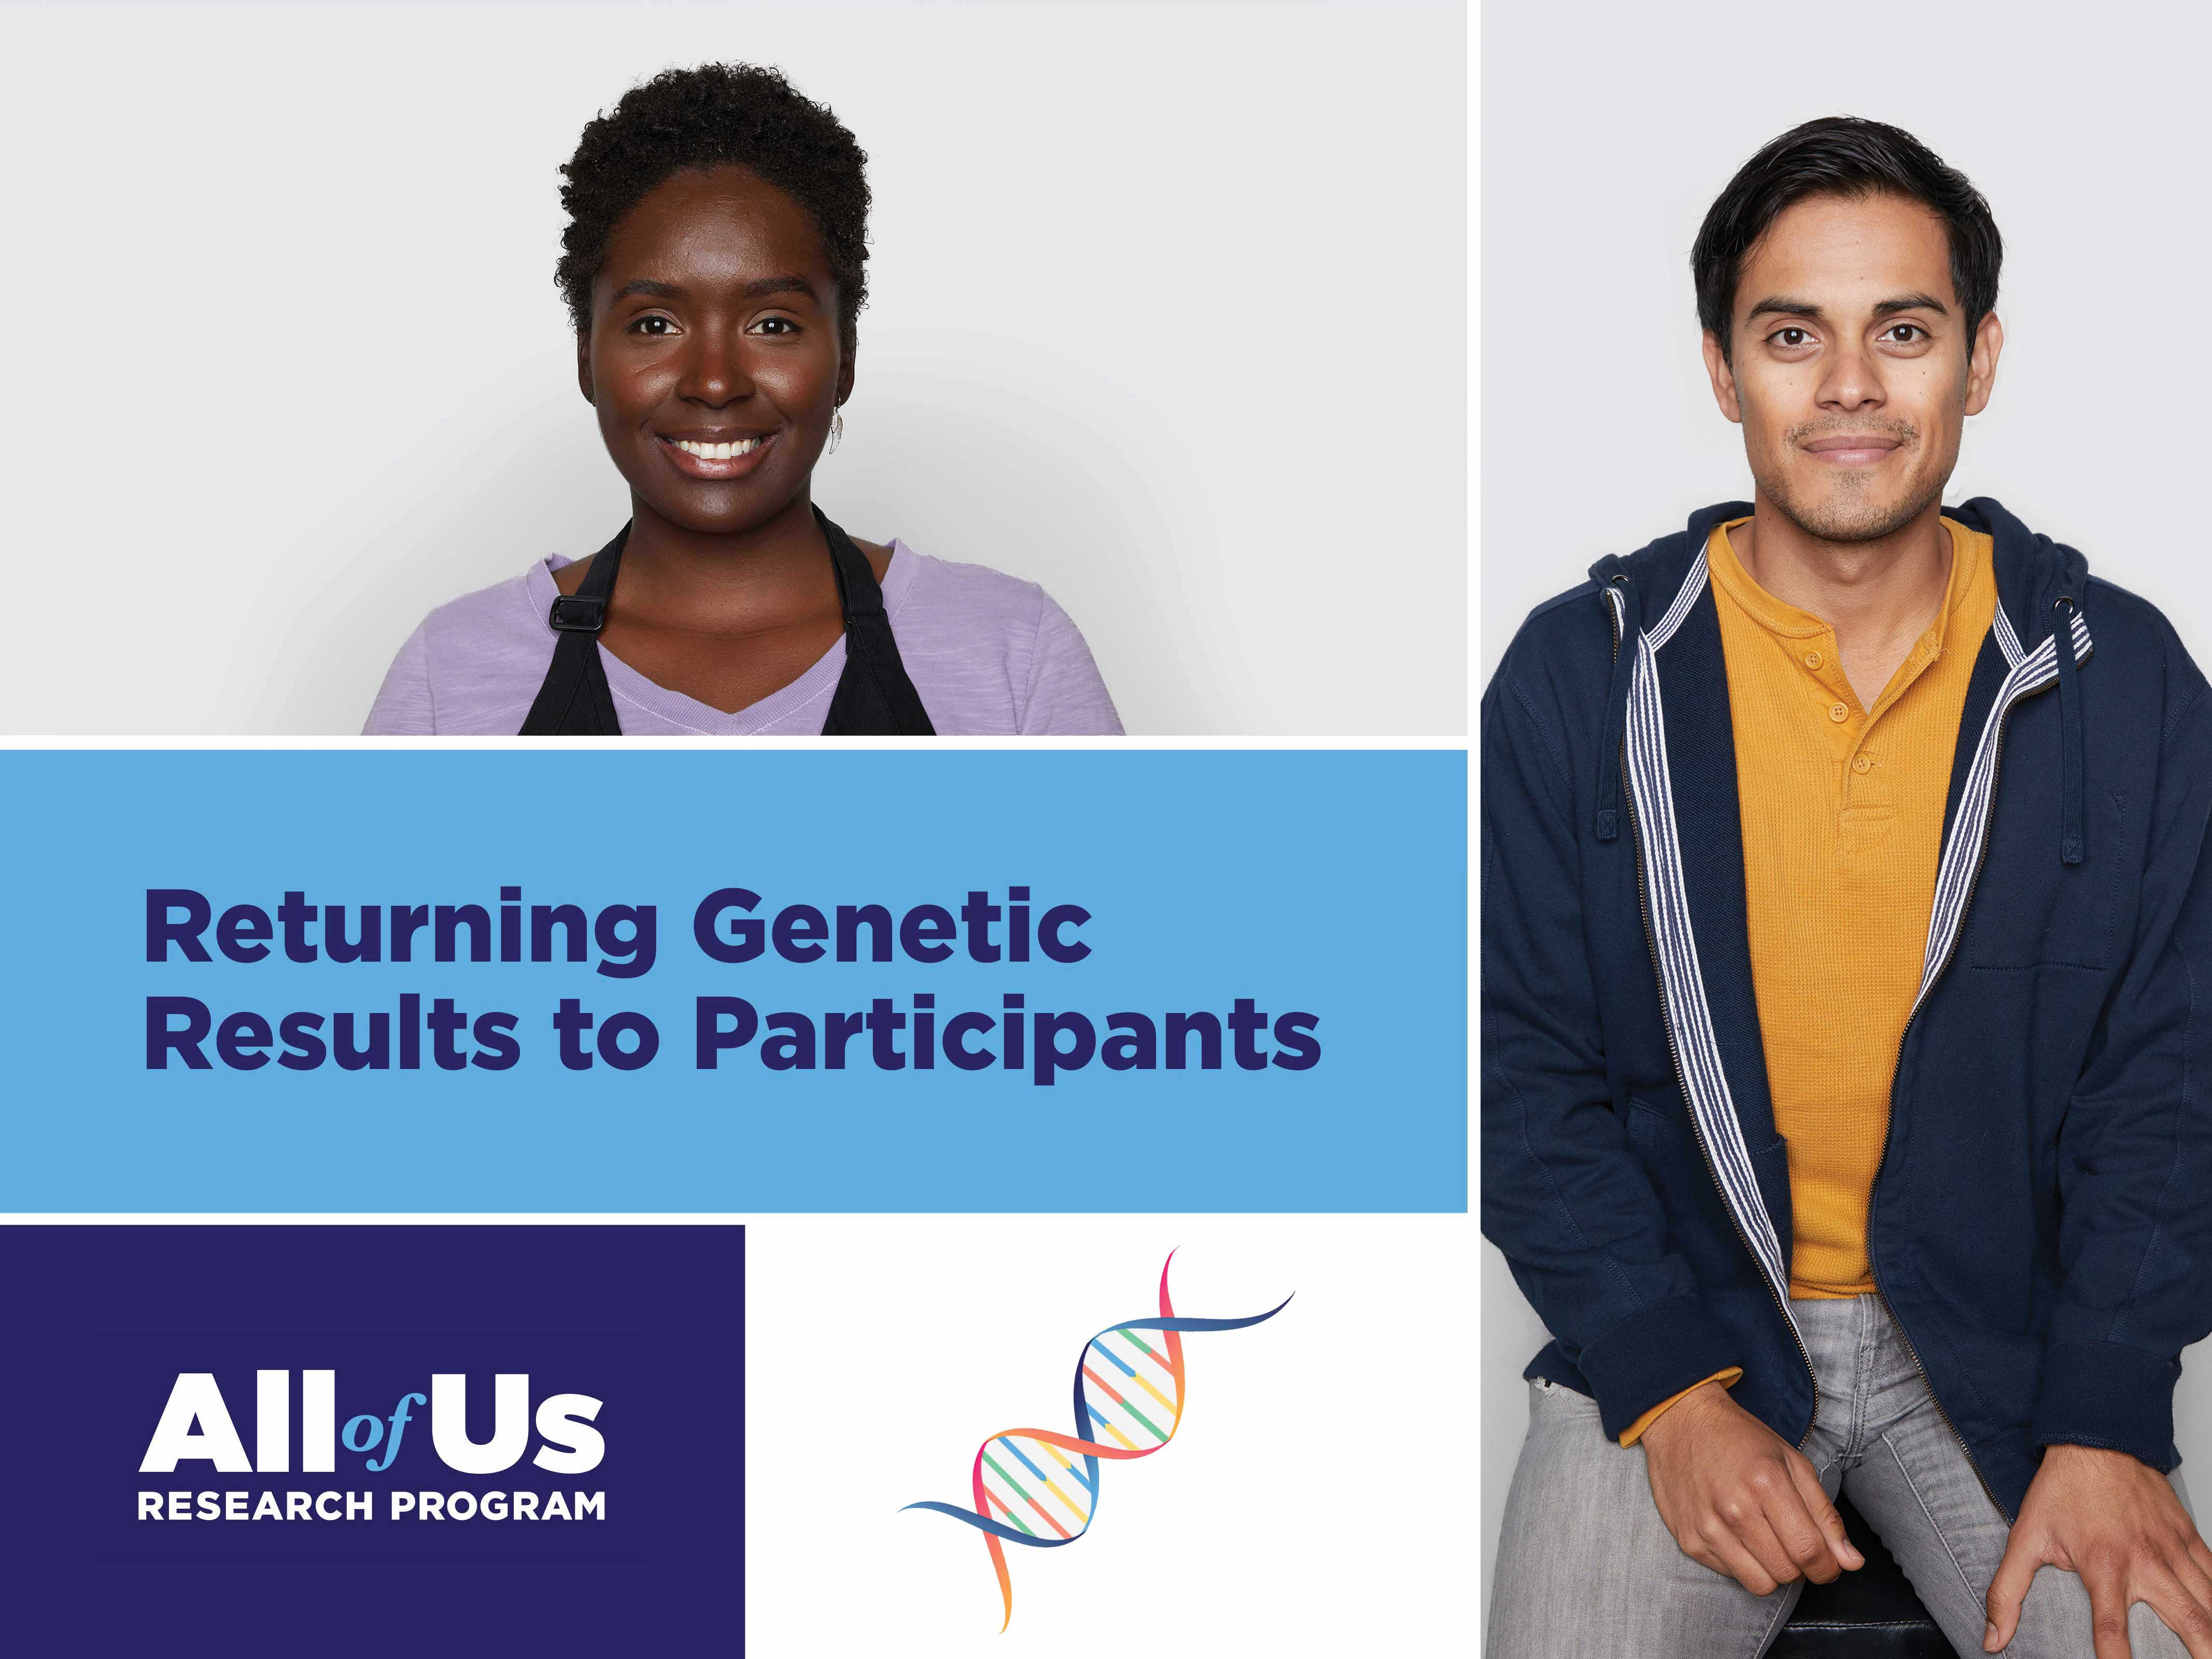 Returning Genetic Results to Participants Graphic